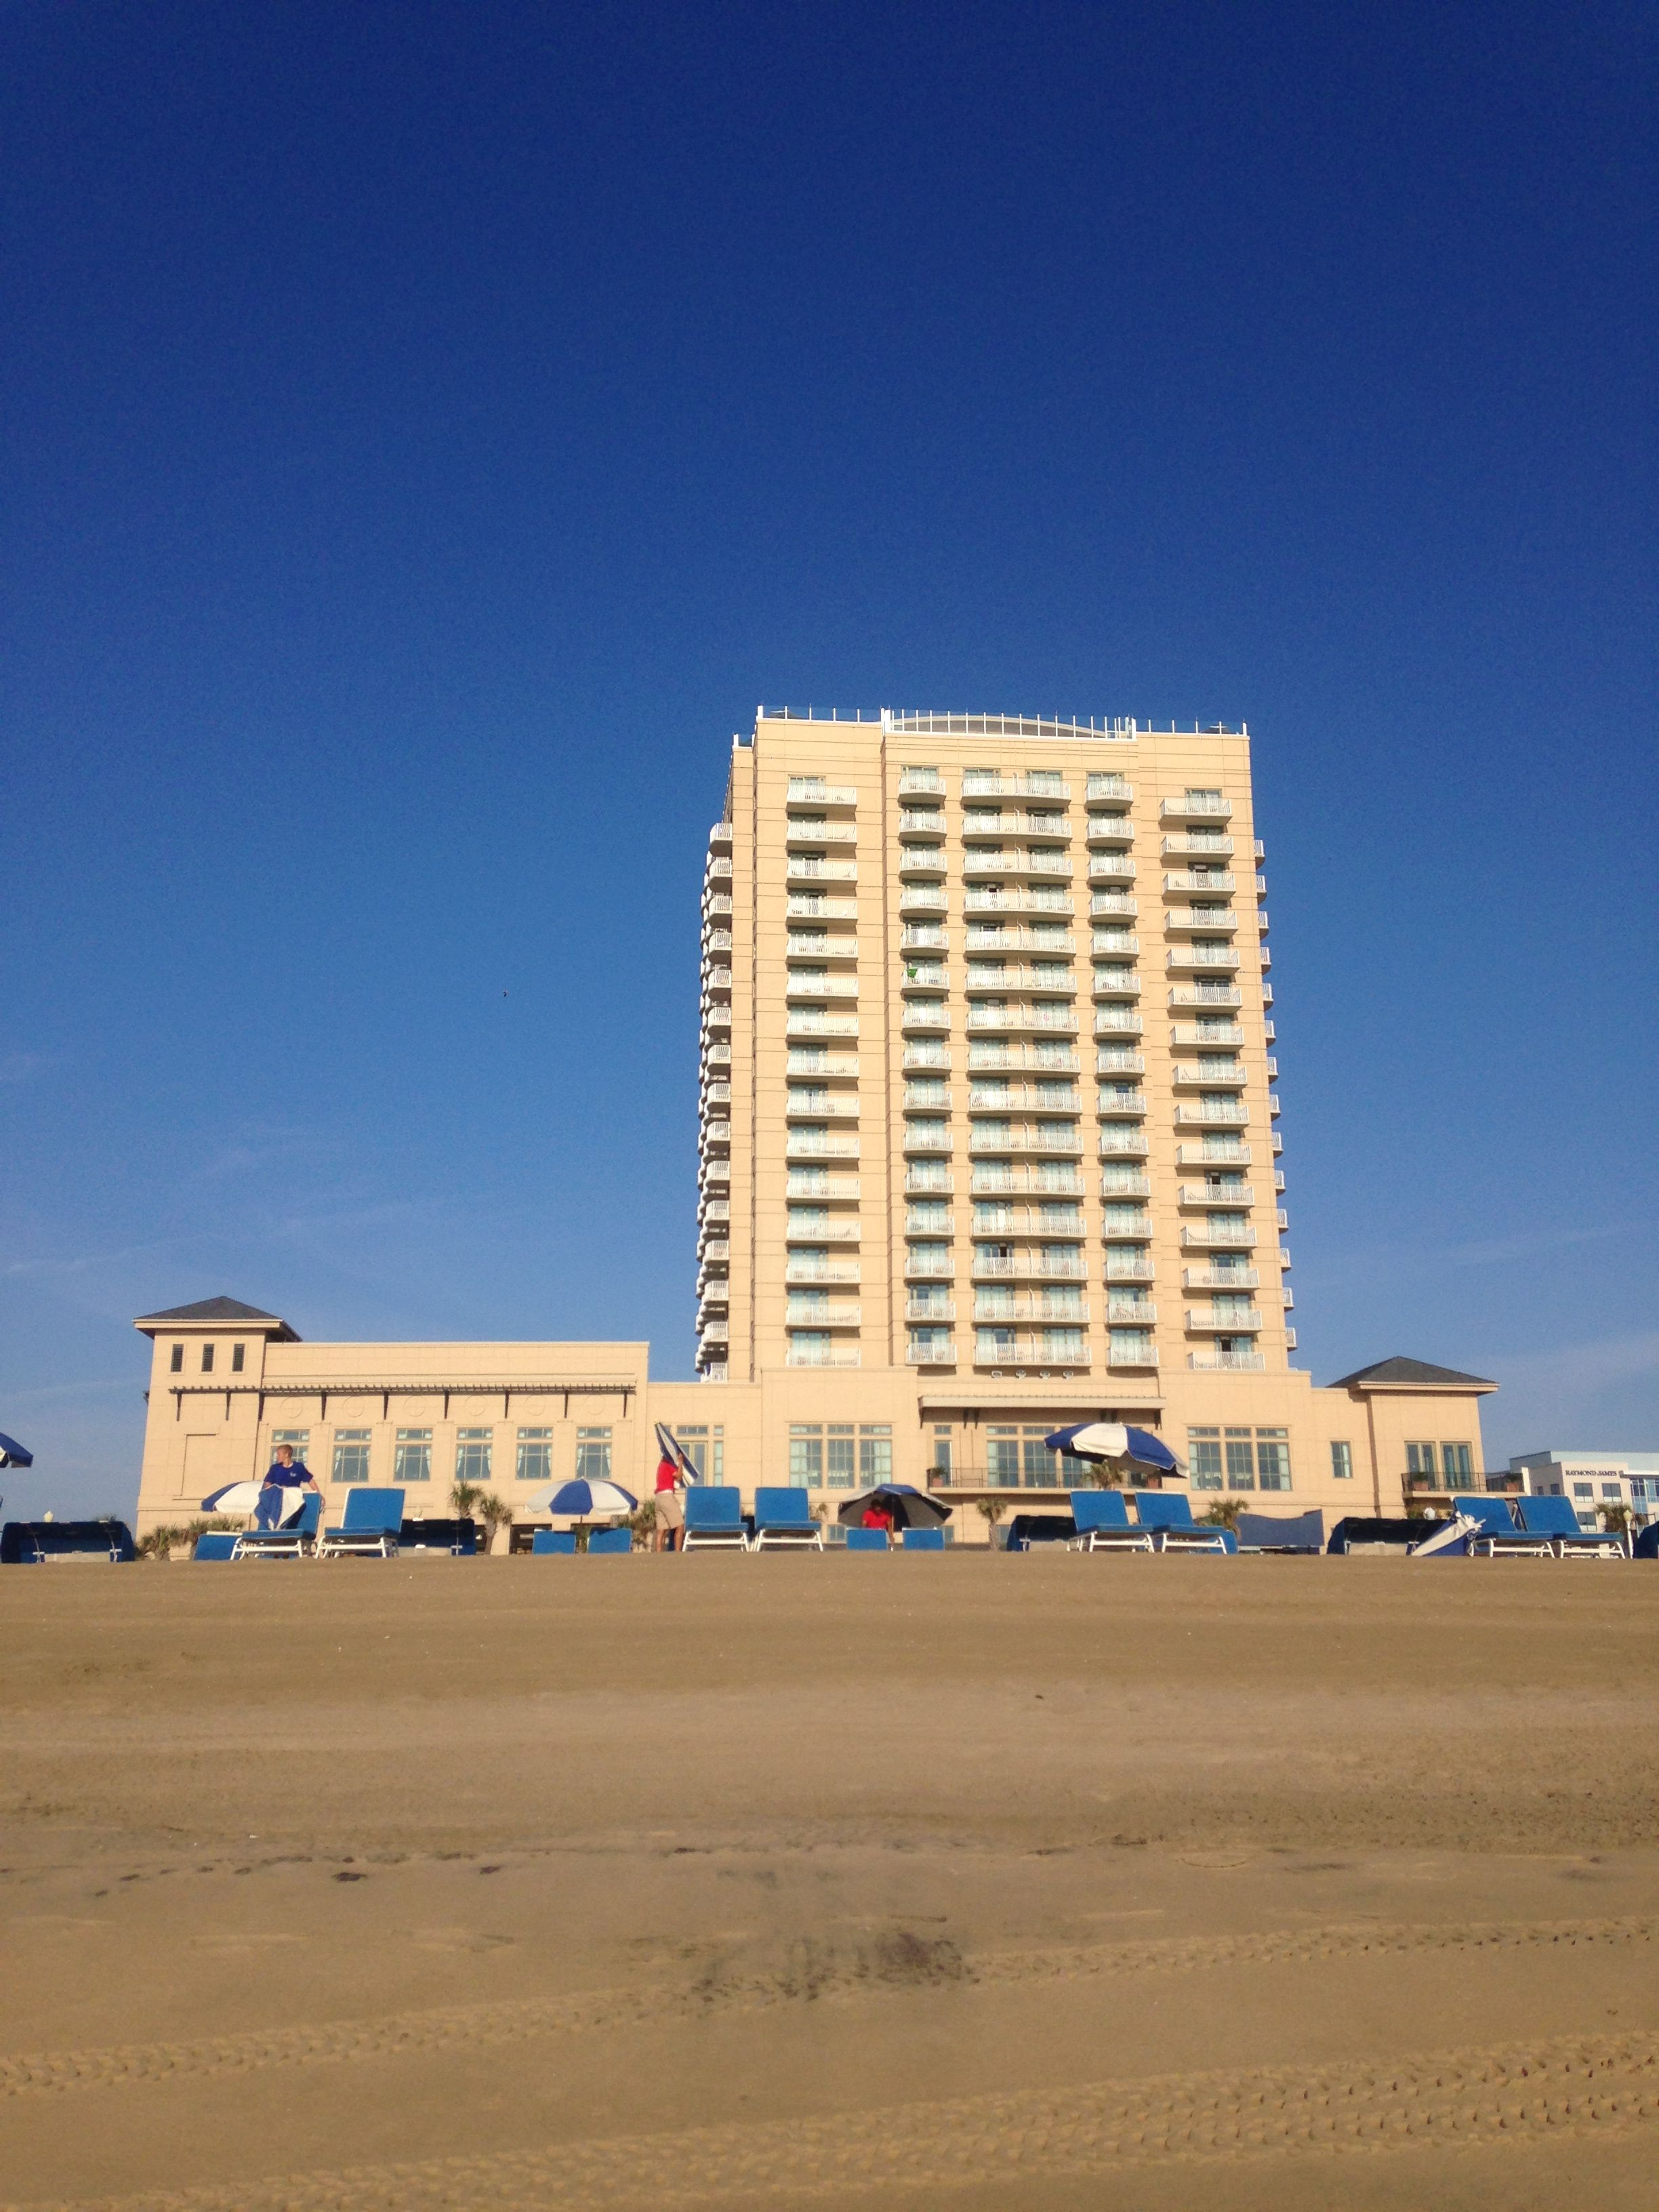 The Hilton Hotel Virginia Beach Oceanfront